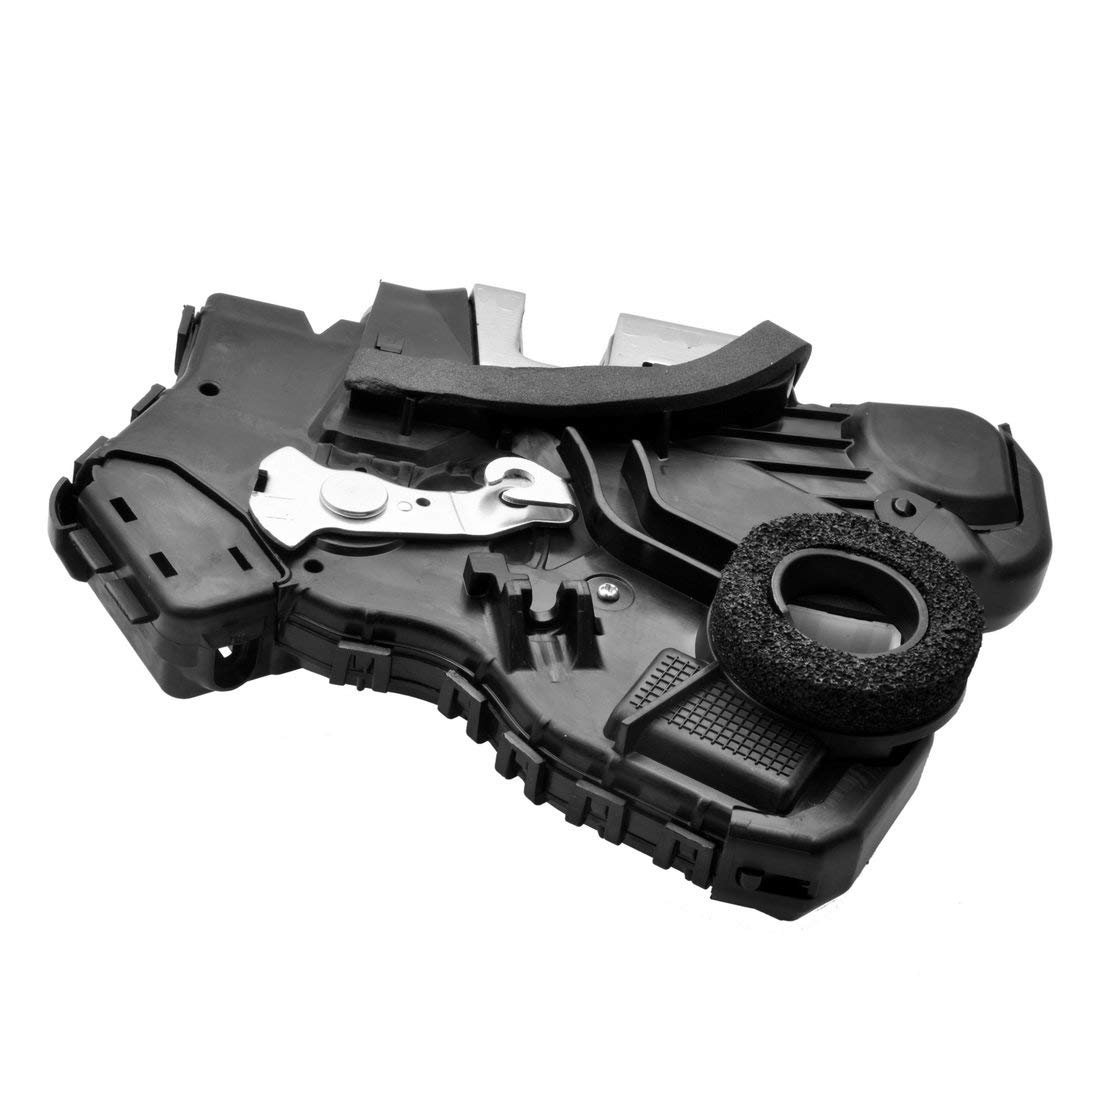 Neeknn 69040-06180 Door Lock Actuator Motor Assembly with Integrated Latch Front Left Drive Side for Toyota 4Runner Camry Corolla Sequoia Sienna Matrix Lexus Scion Models 69040-02120 69040-33221 69040